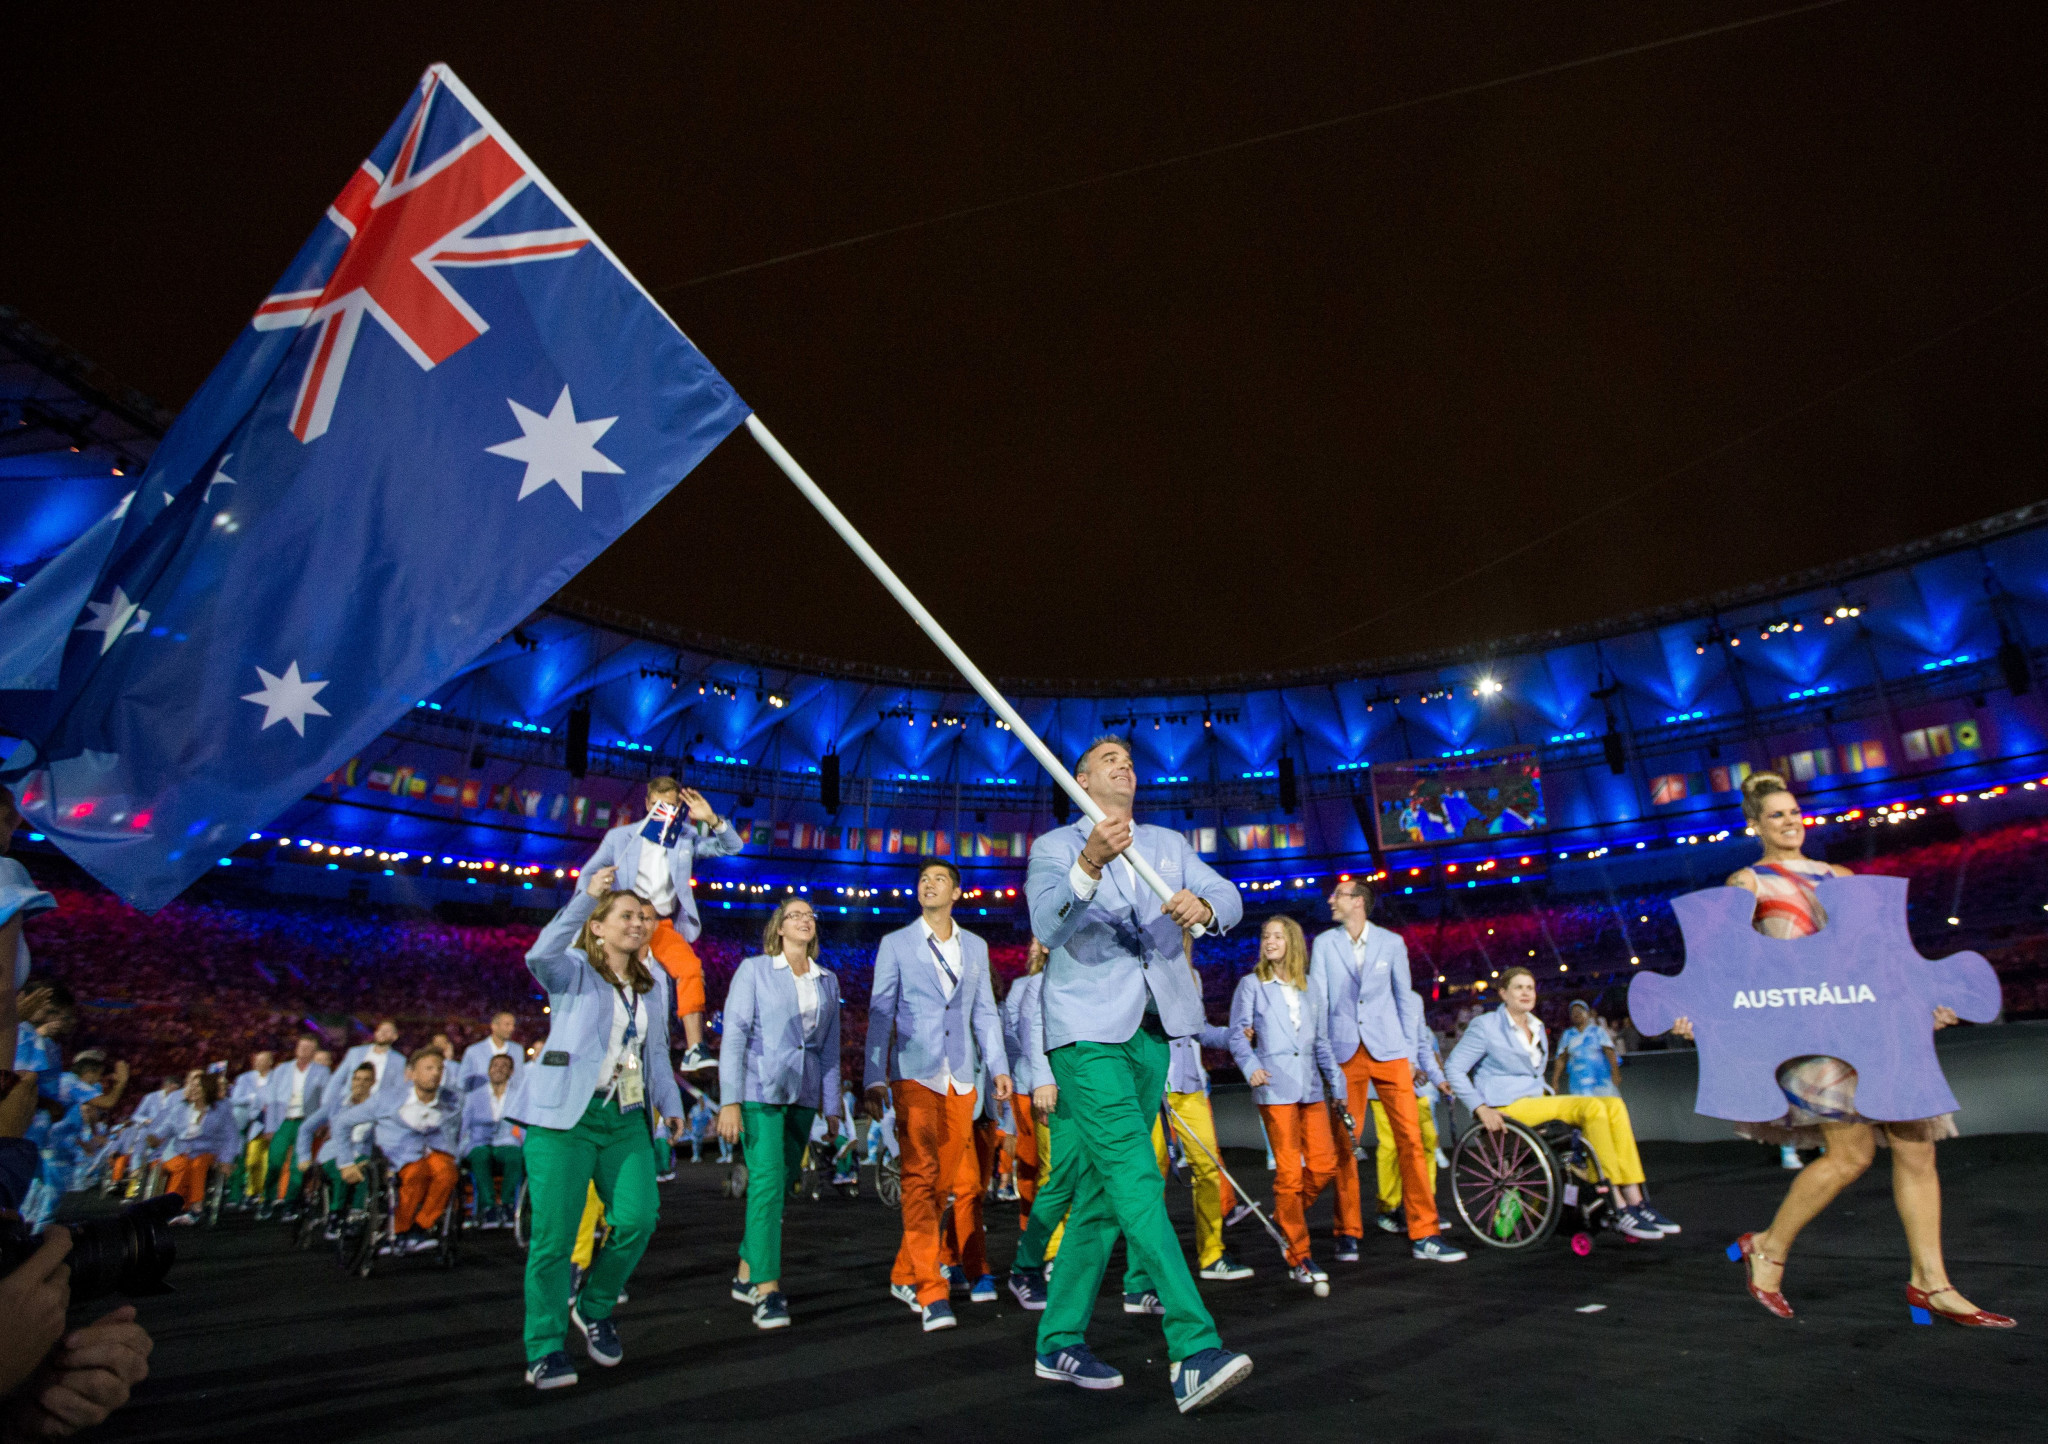 The Federal Police also provided security services to Australian Paralympic athletes at London 2012, Sochi 2014 and Rio 2016 ©Getty Images